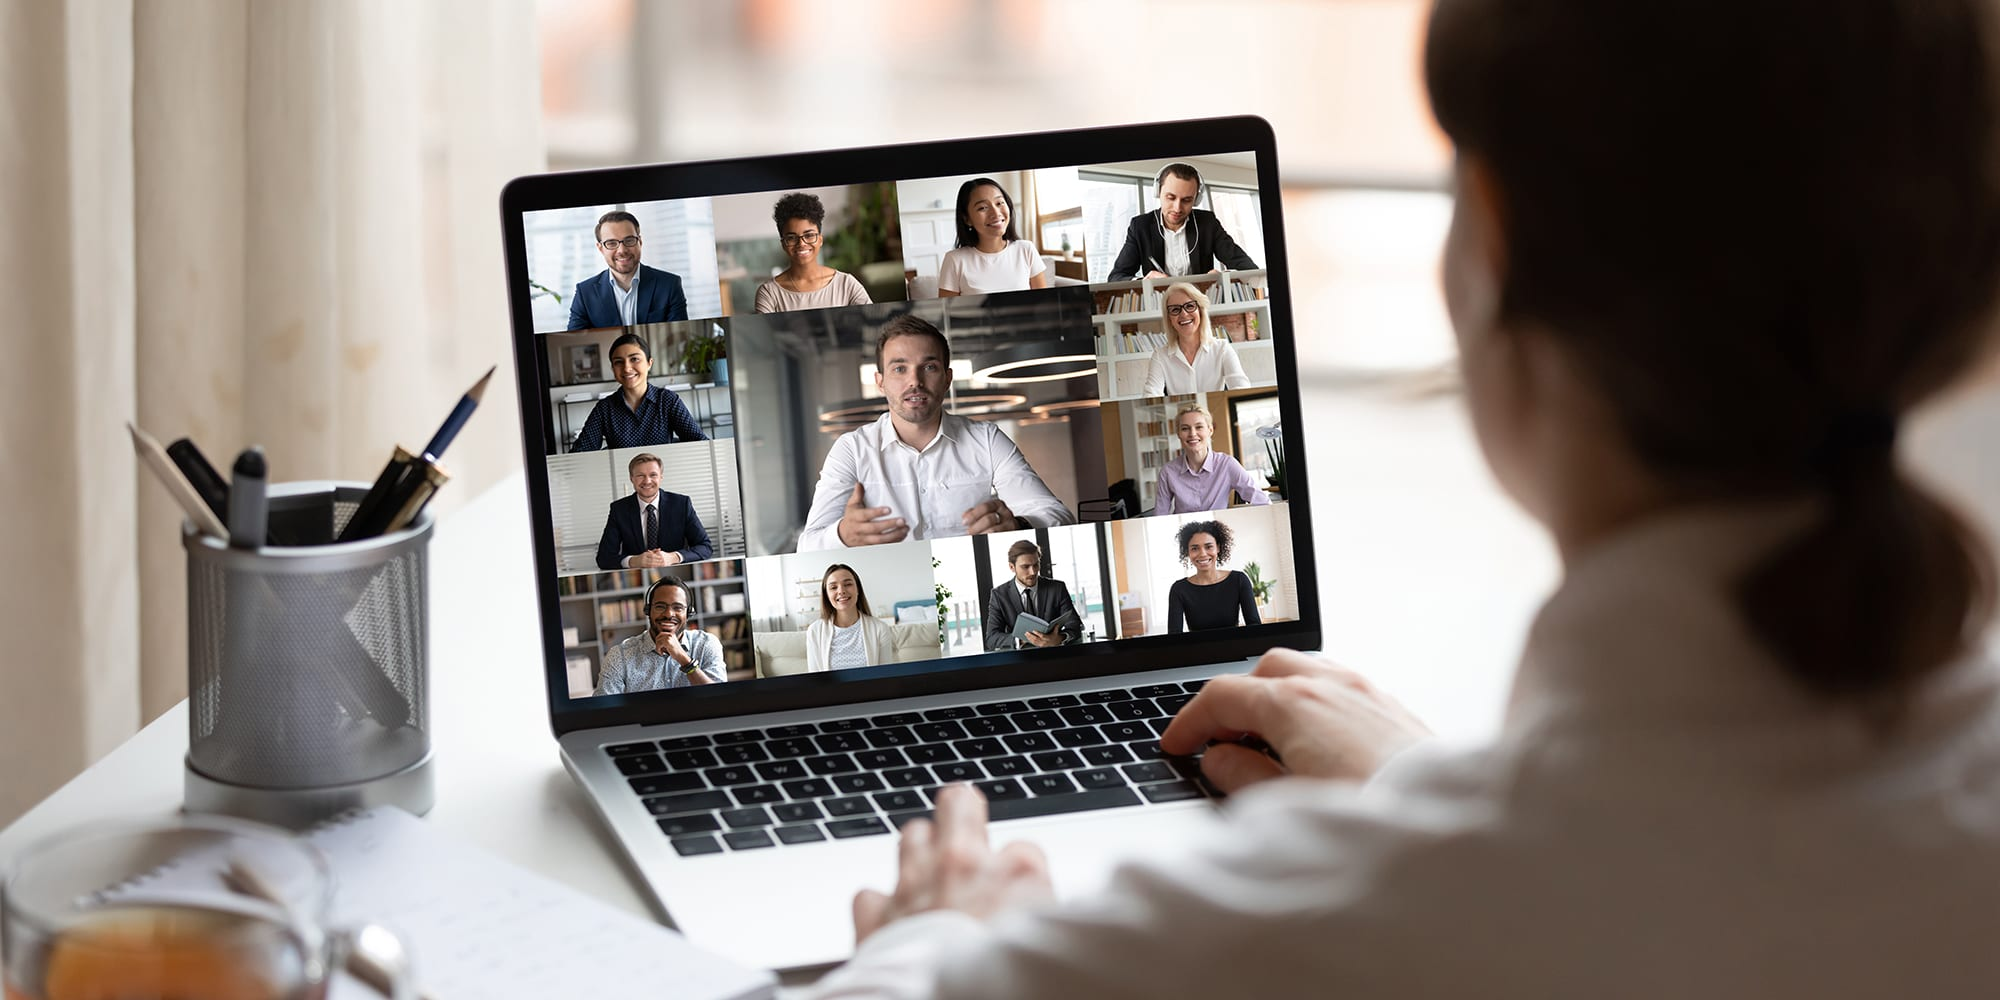 6 tips for starting a new job remotely